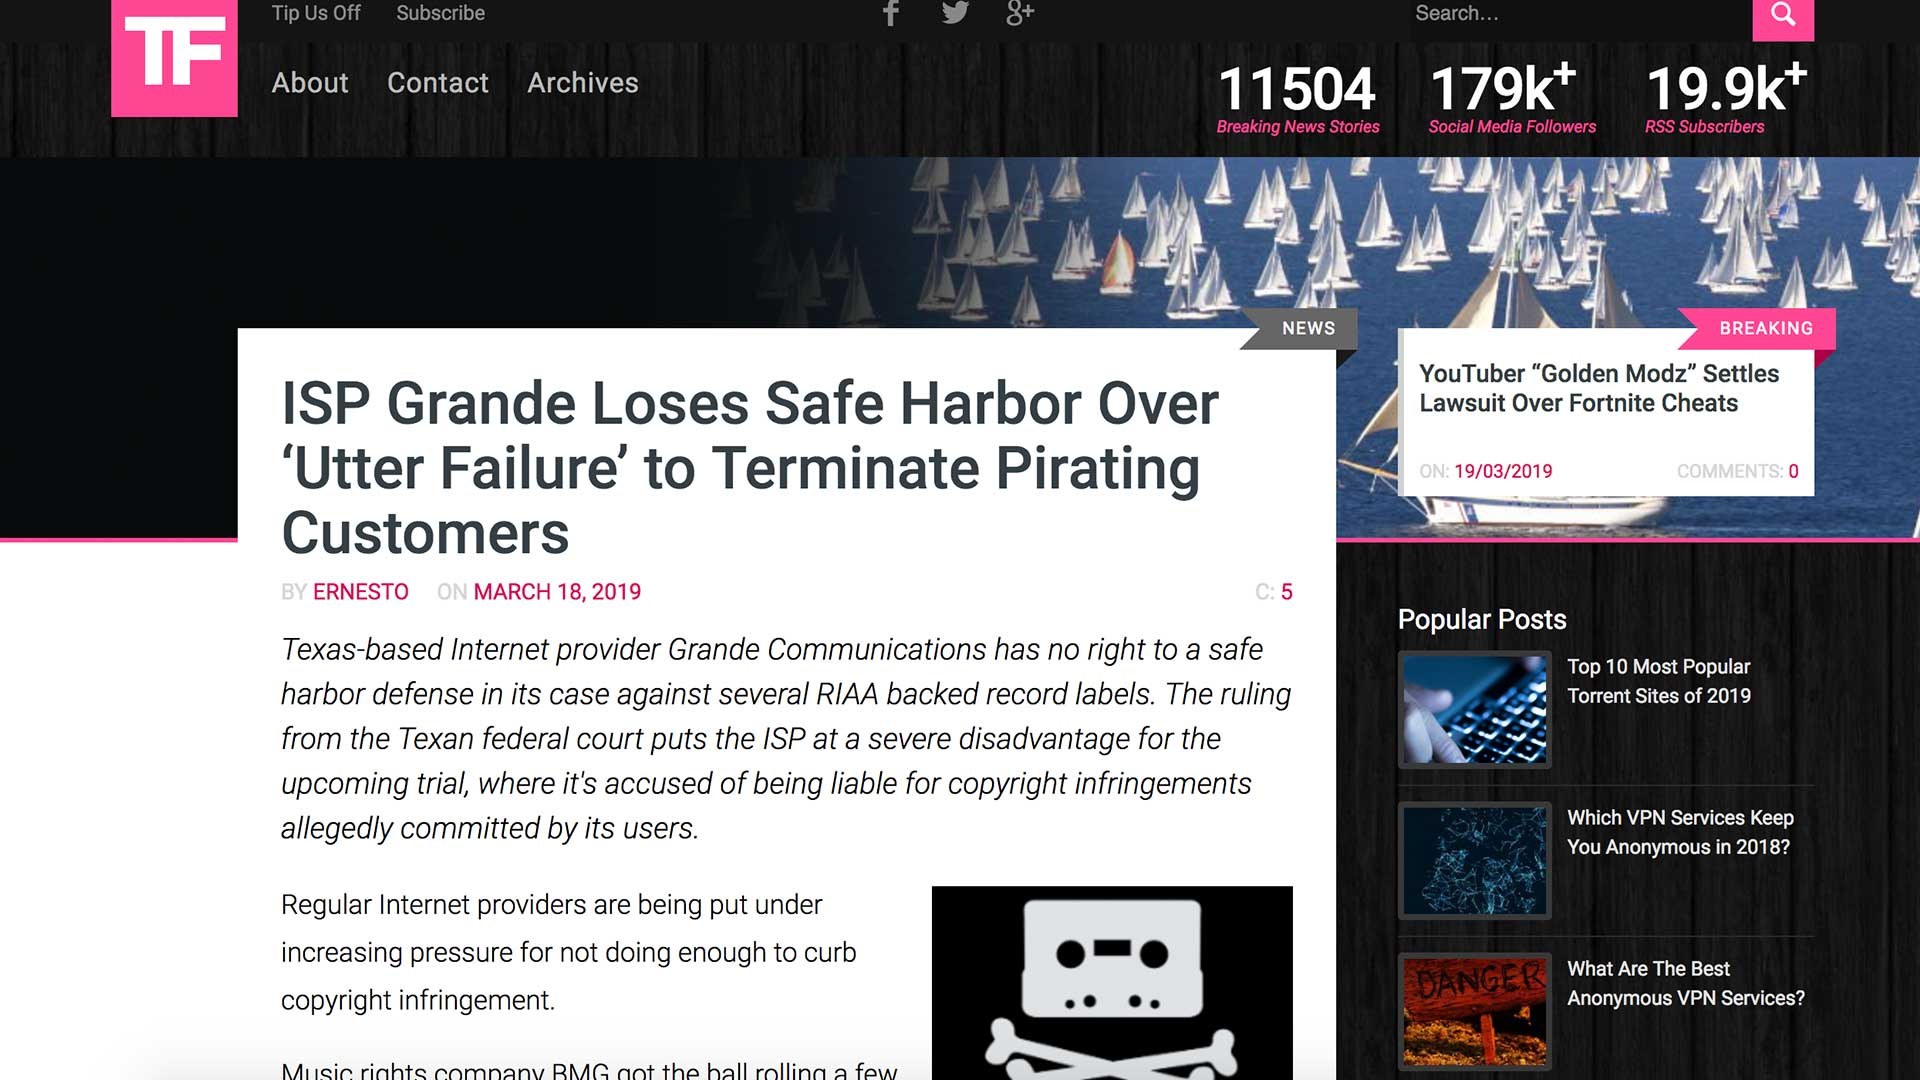 Fairness Rocks News ISP Grande Loses Safe Harbor Over 'Utter Failure' to Terminate Pirating Customers